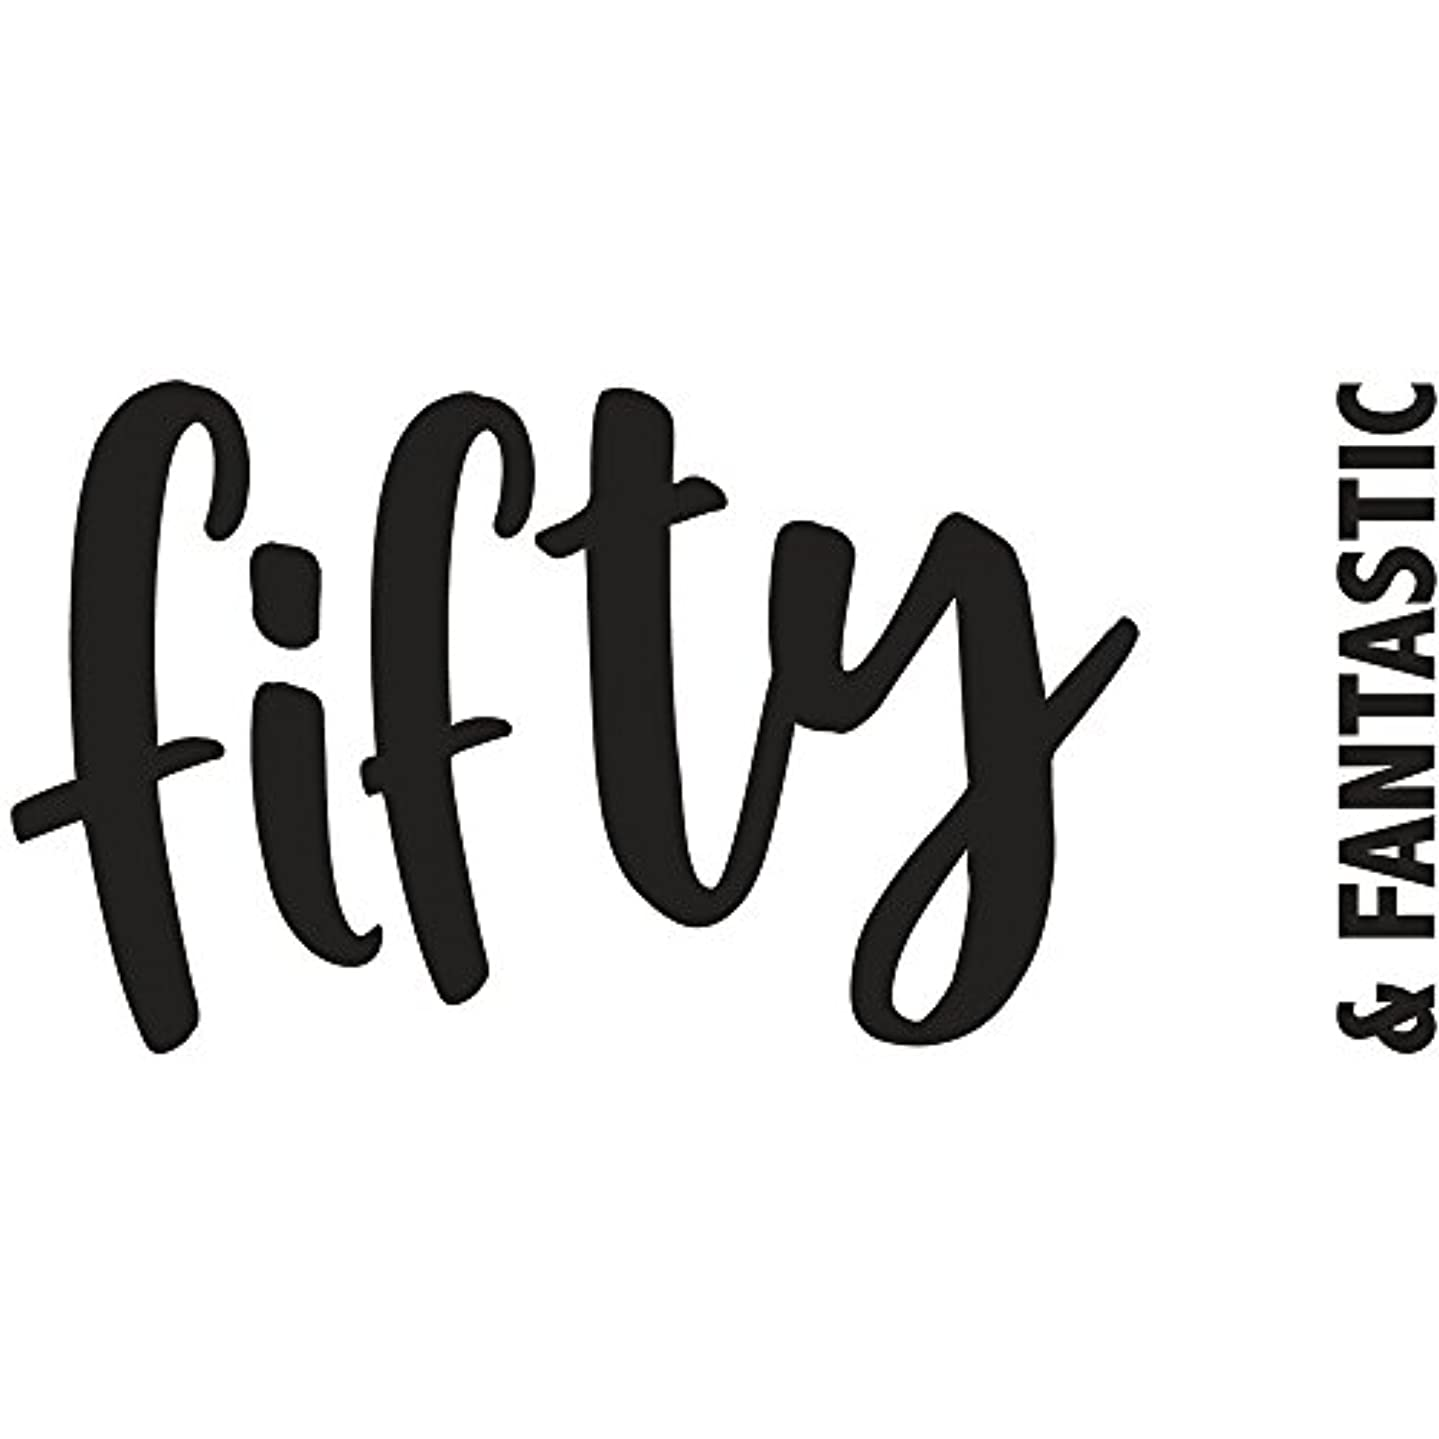 Rayher 29119000 Wood Mounted Rubber Stamp Featuring The Phrase Fifty & Fantastic, Stamps for Milestone Birthday, Crafting, Card Making and Scrapbooking, 10cm x 5cm